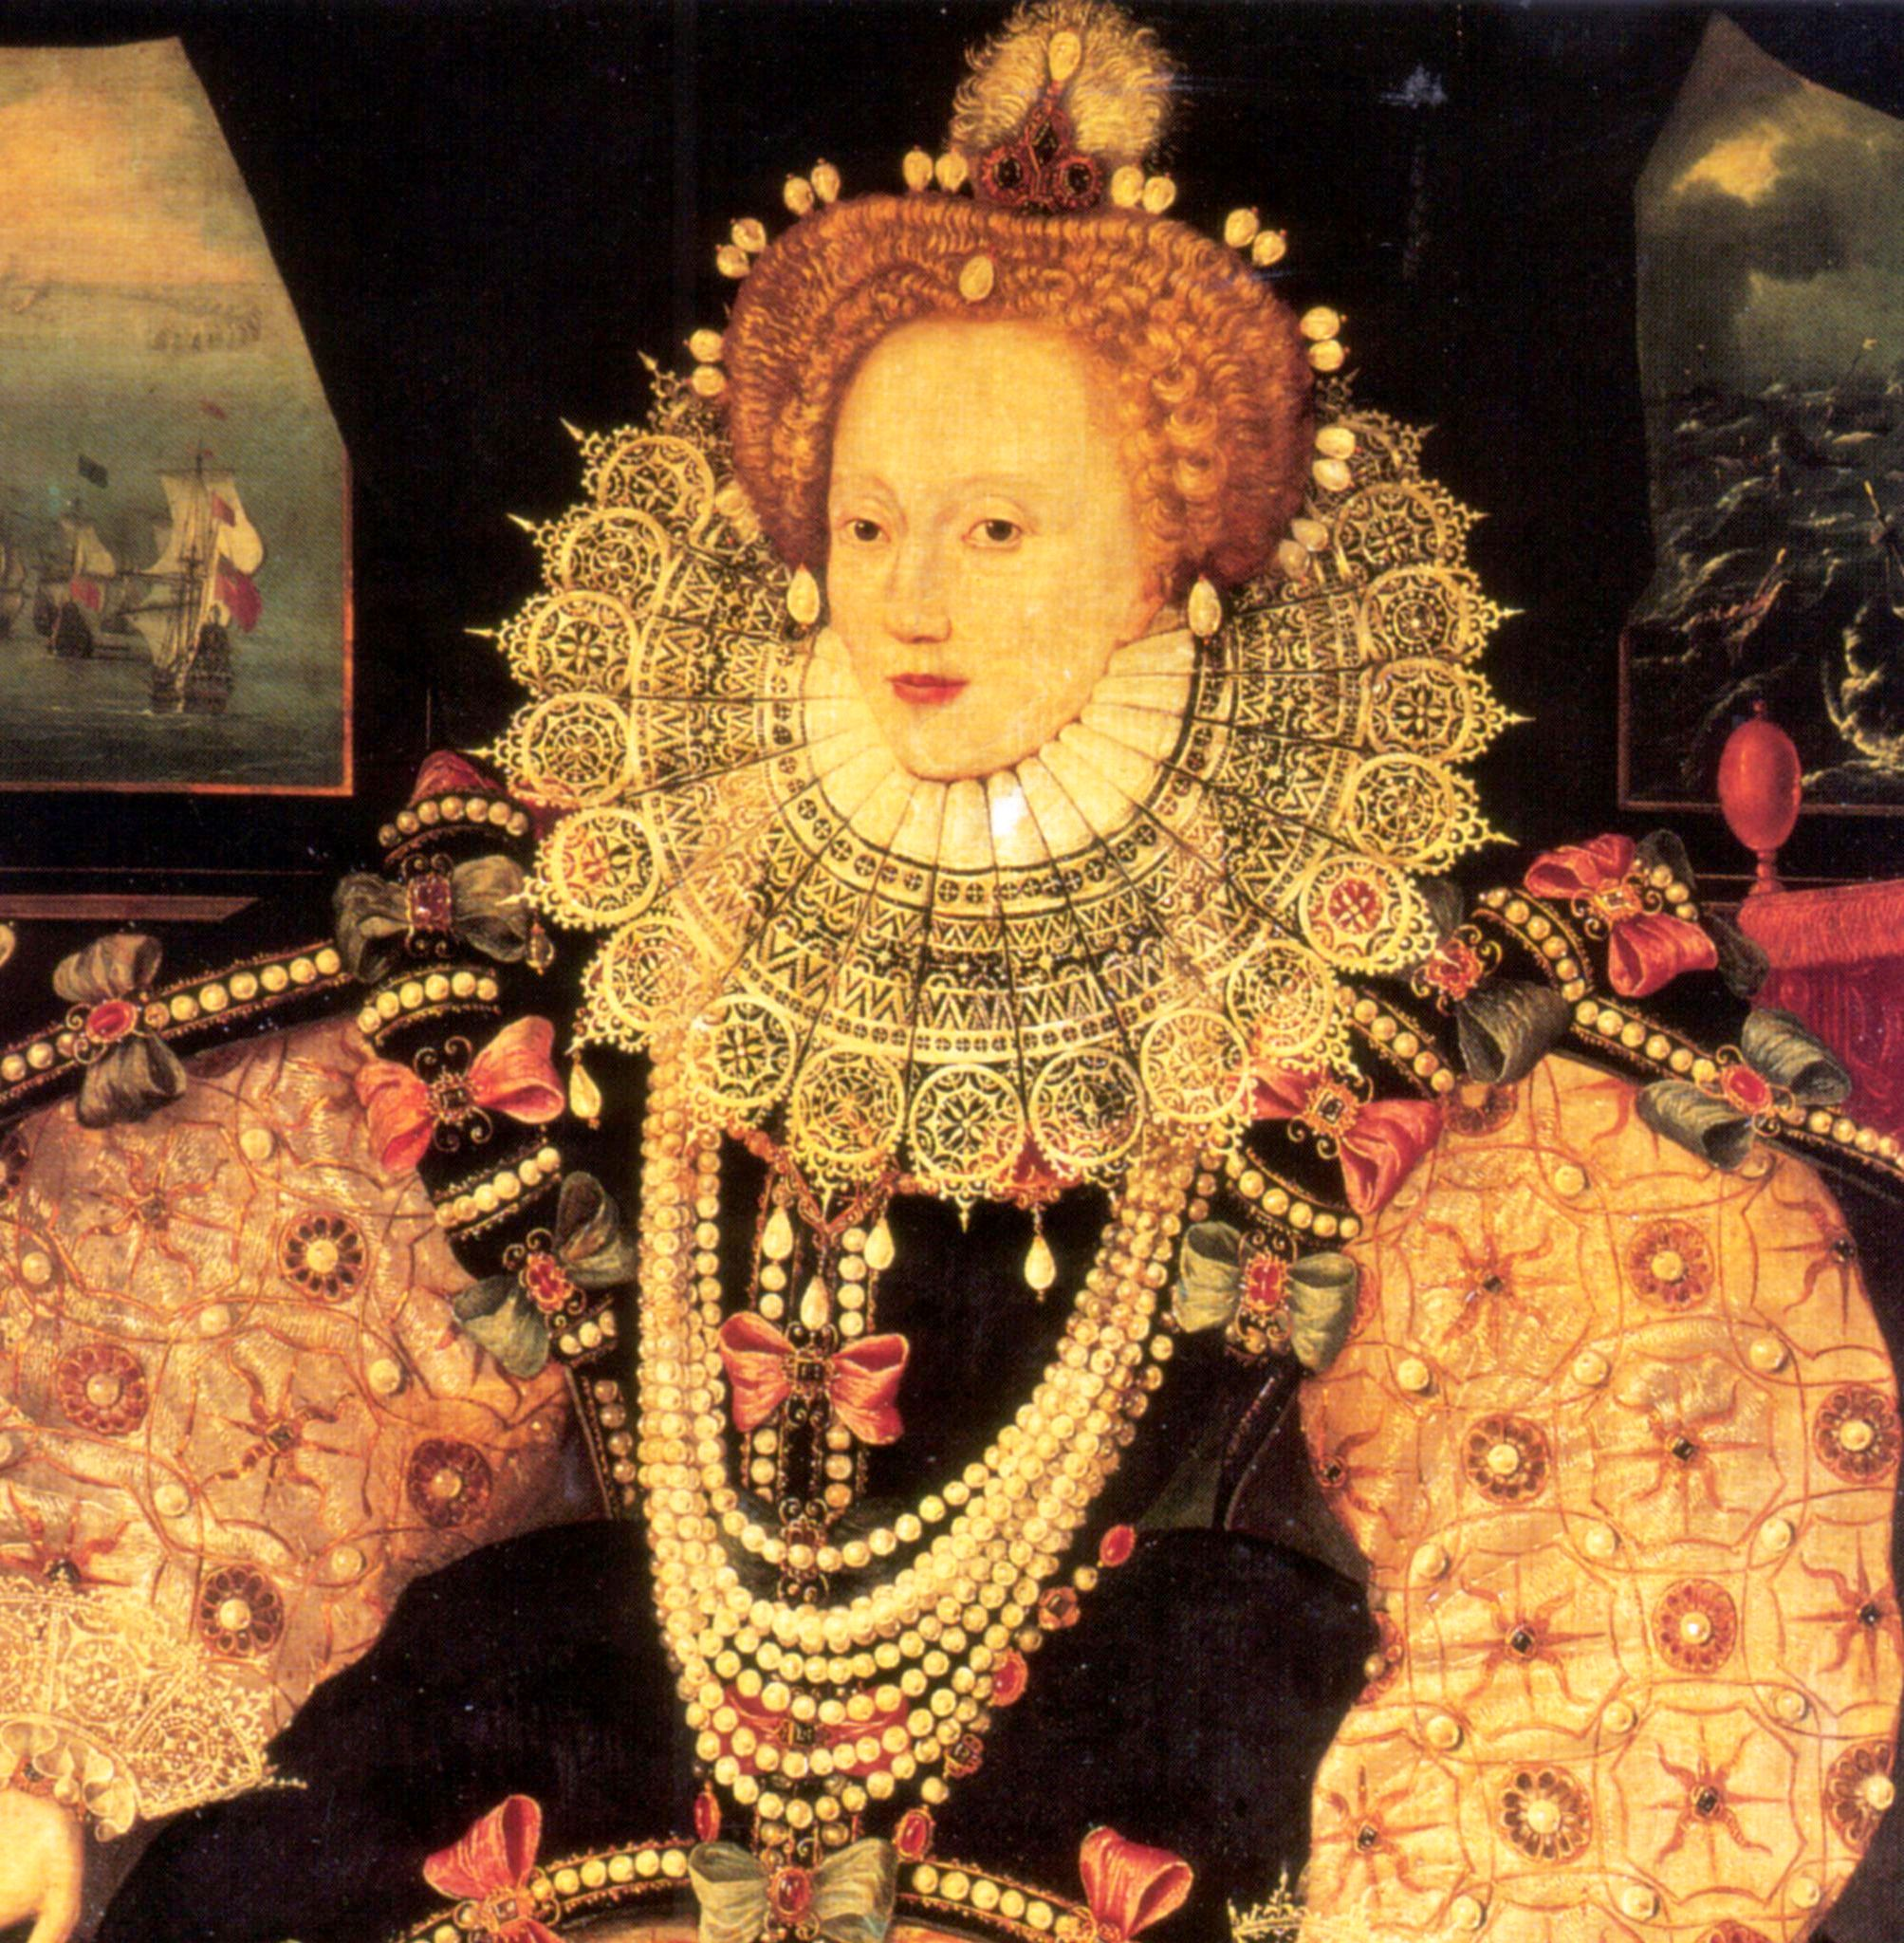 This detail of the Armada Portrait, c.1588, shows an ageing Queen Elizabeth I adorned in jewels and one of her many tightly-curled auburn wigs